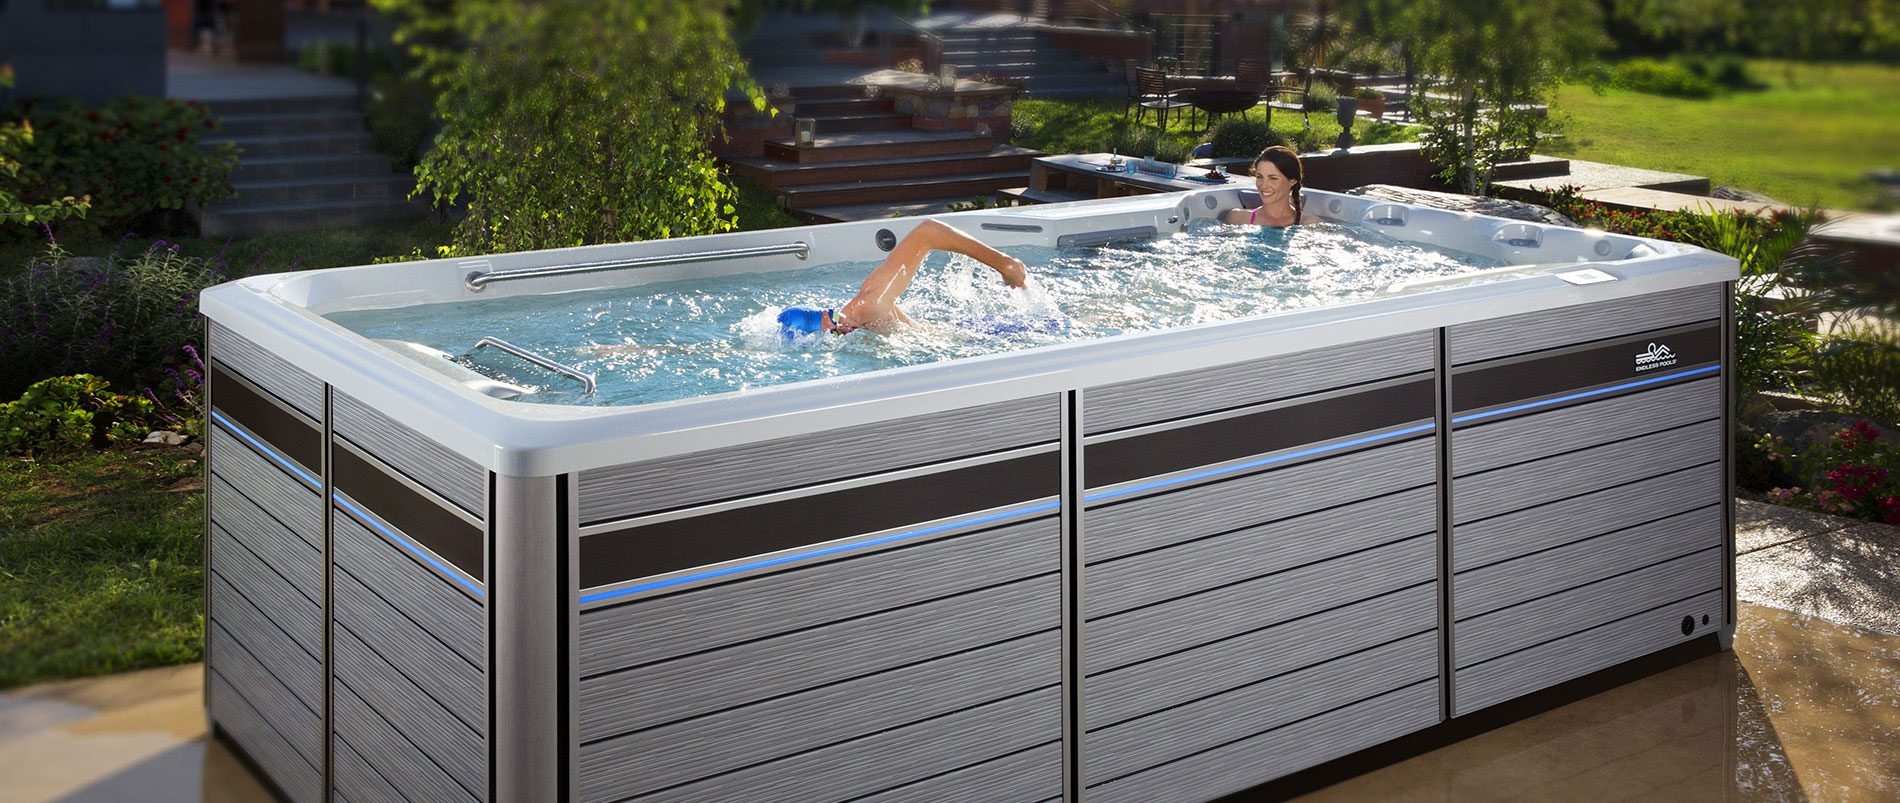 Exercise Pools Swim Spas | NEW Endless Pools® Fitness Systems